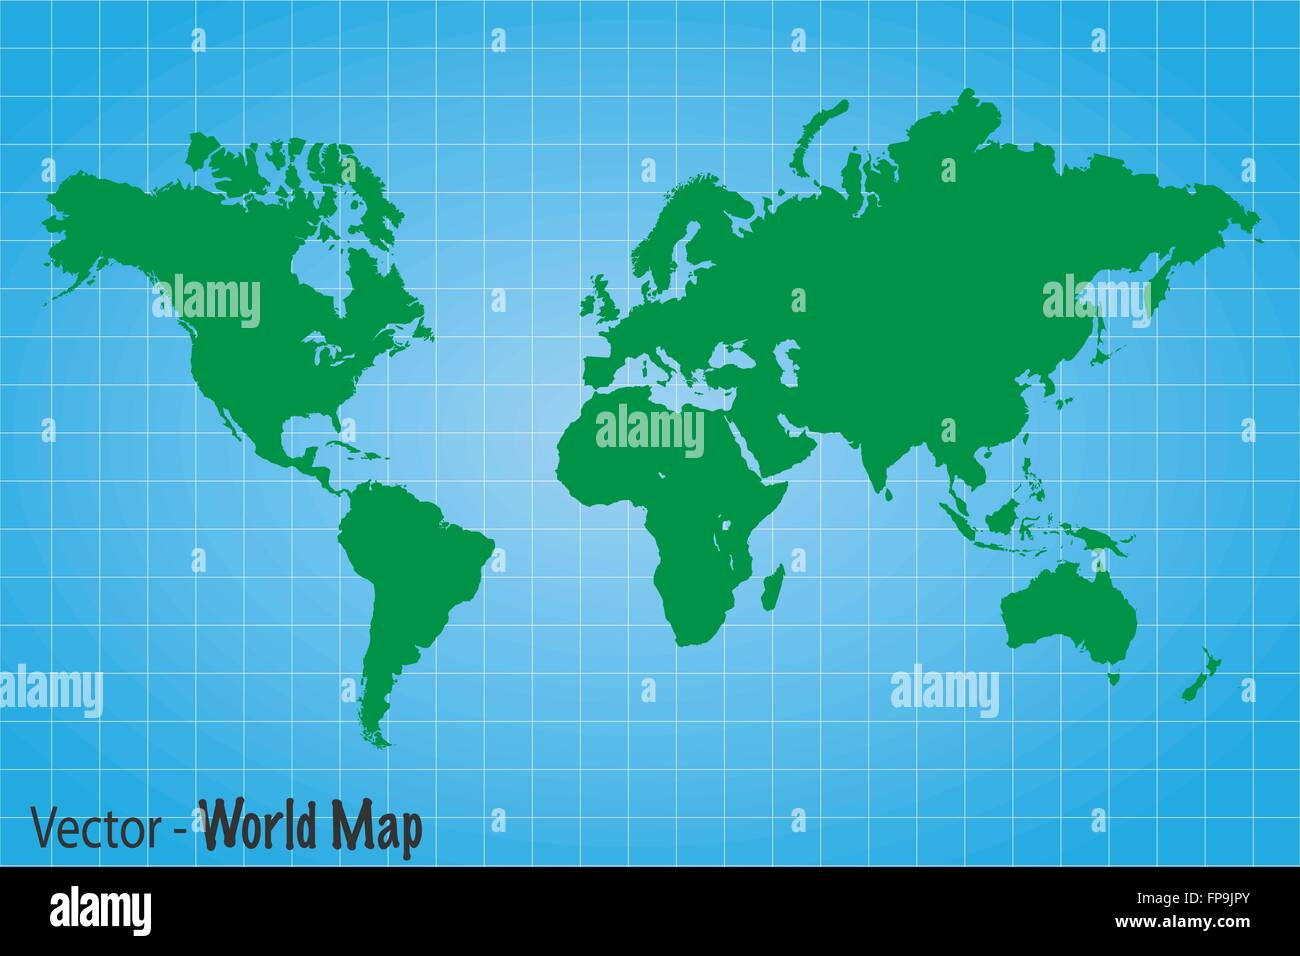 Illustration of a green world map on a blue grid background stock illustration of a green world map on a blue grid background gumiabroncs Image collections